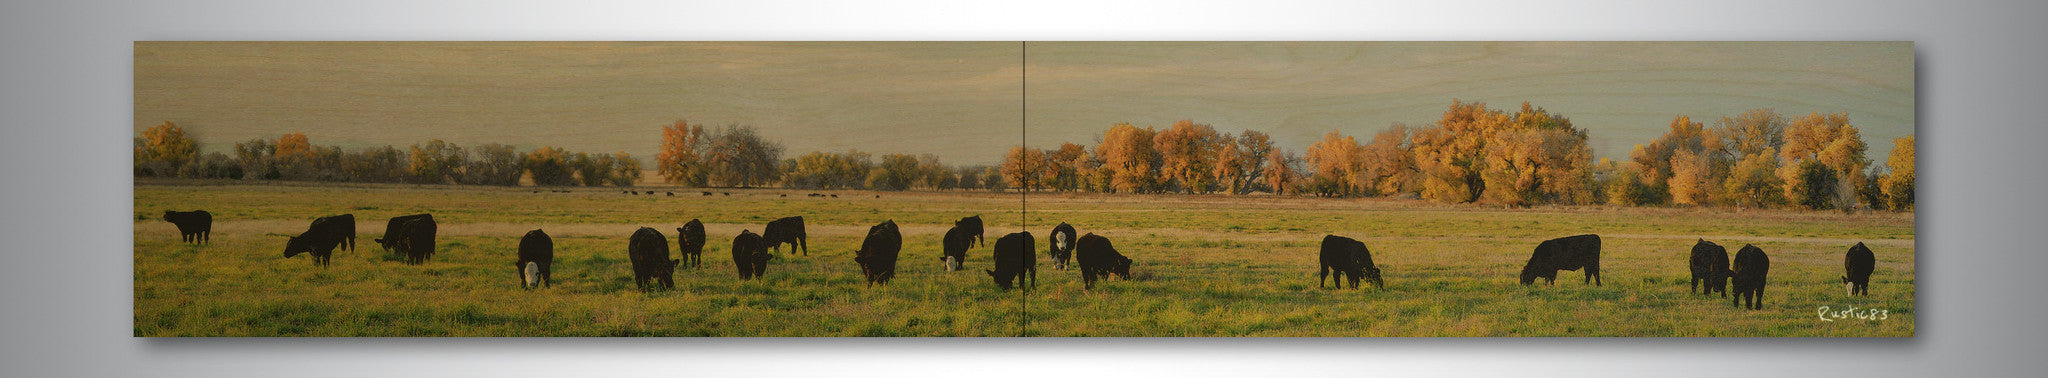 Grazing Cattle wood print - Unlimited 83